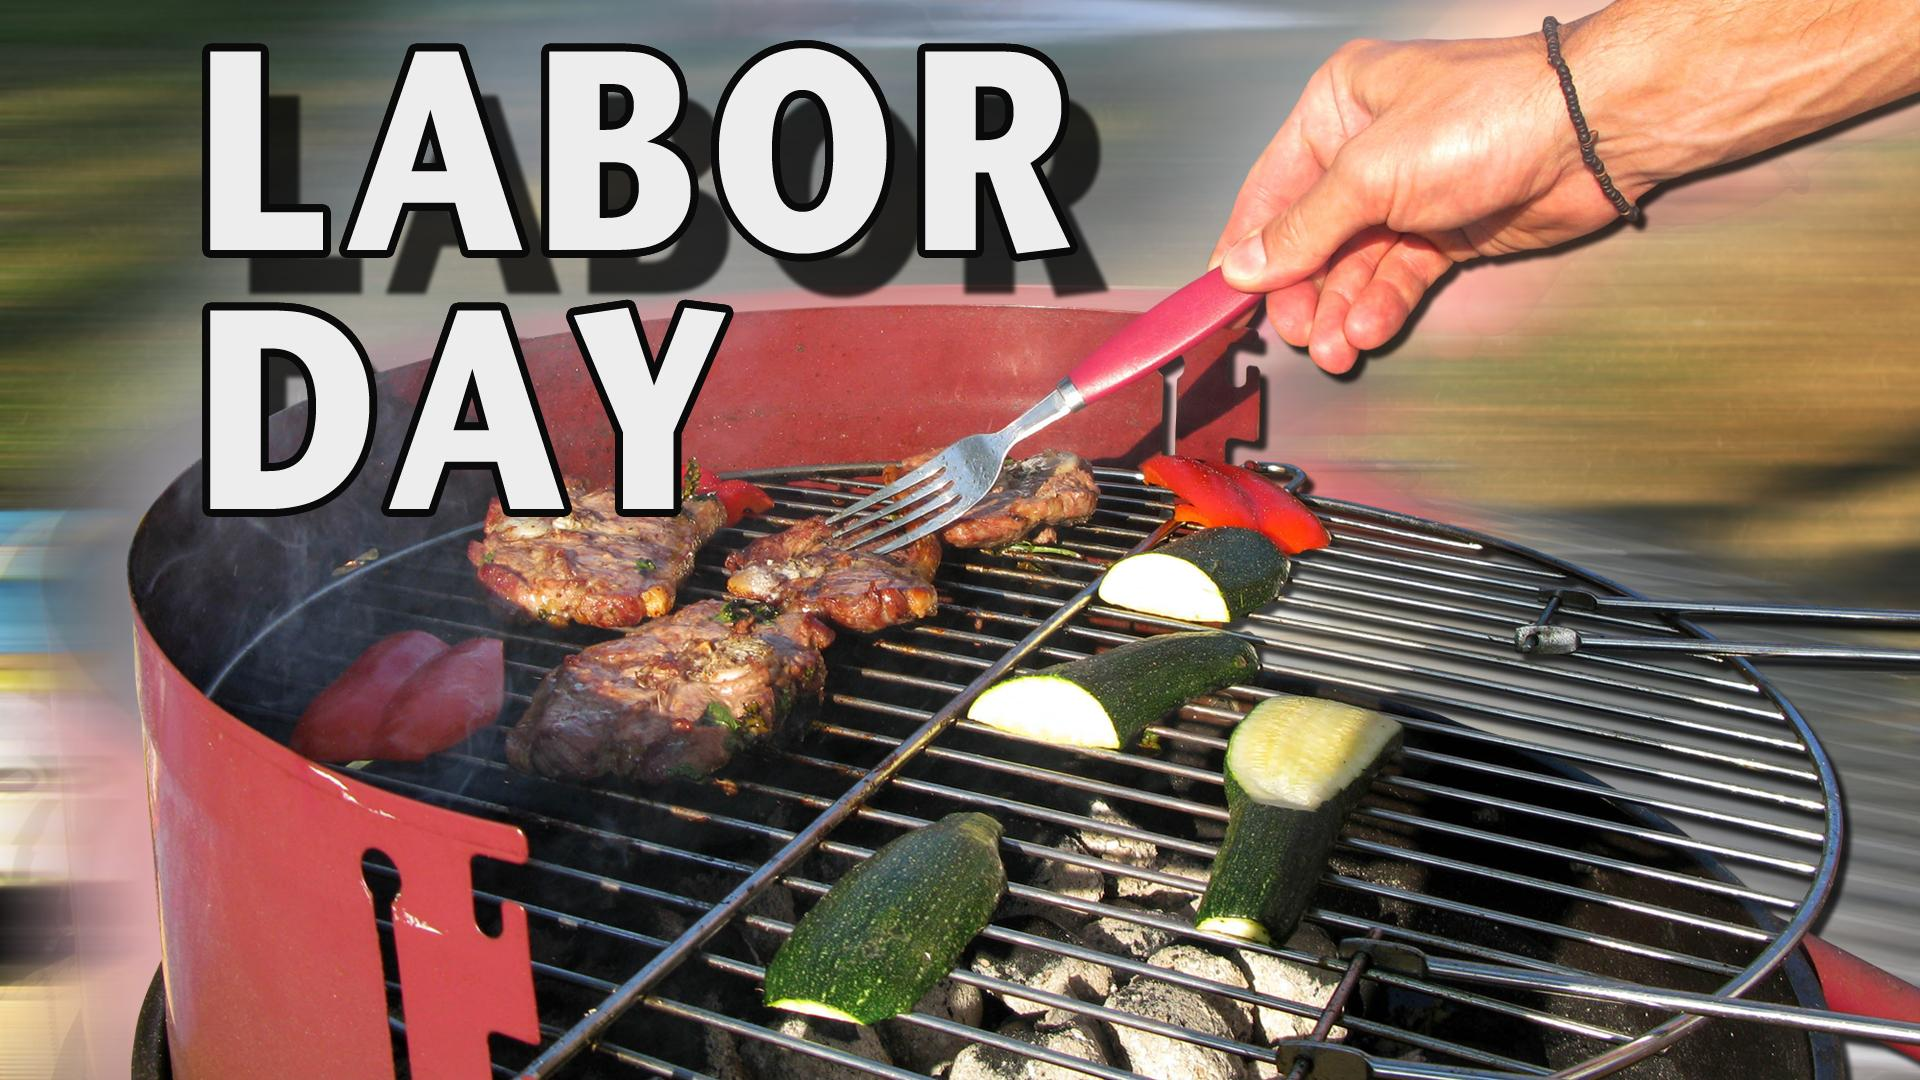 labor day grilling_57422